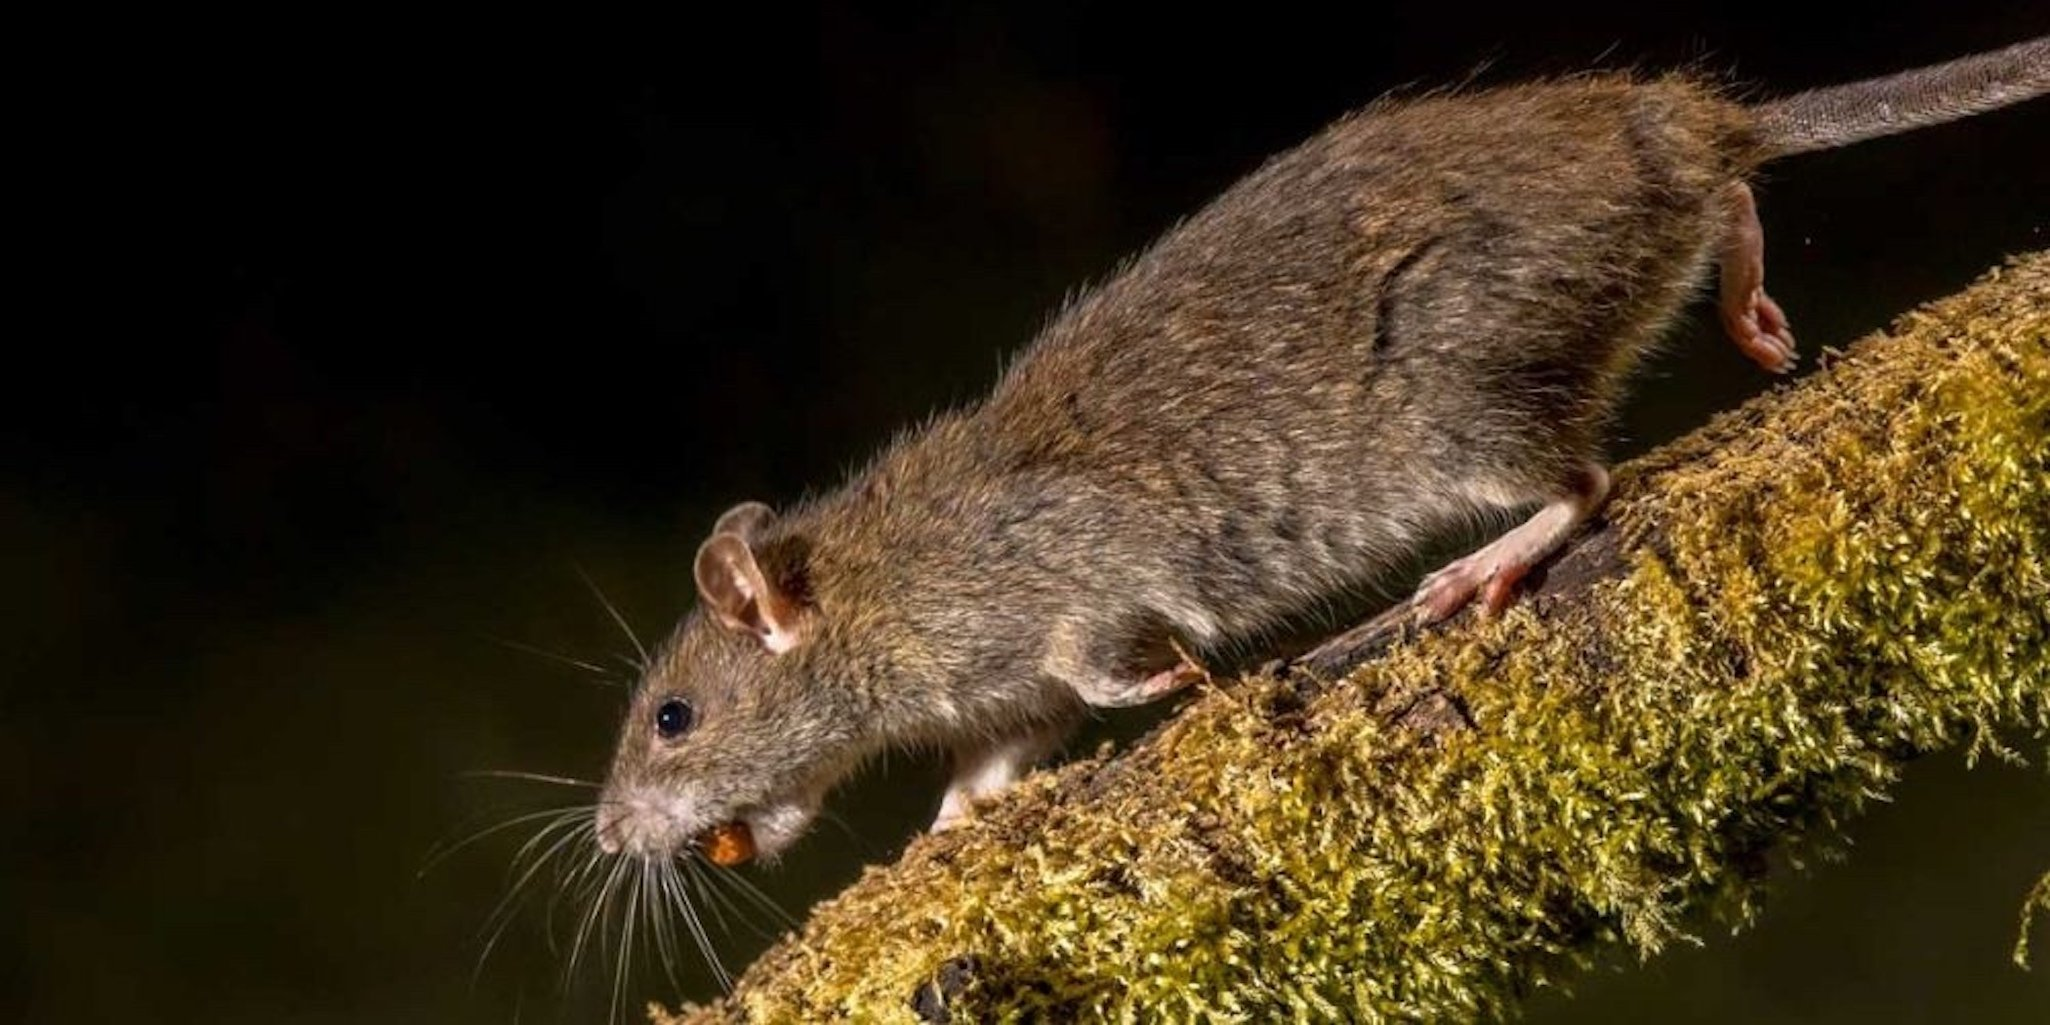 Brown Rat With Food In Mouth